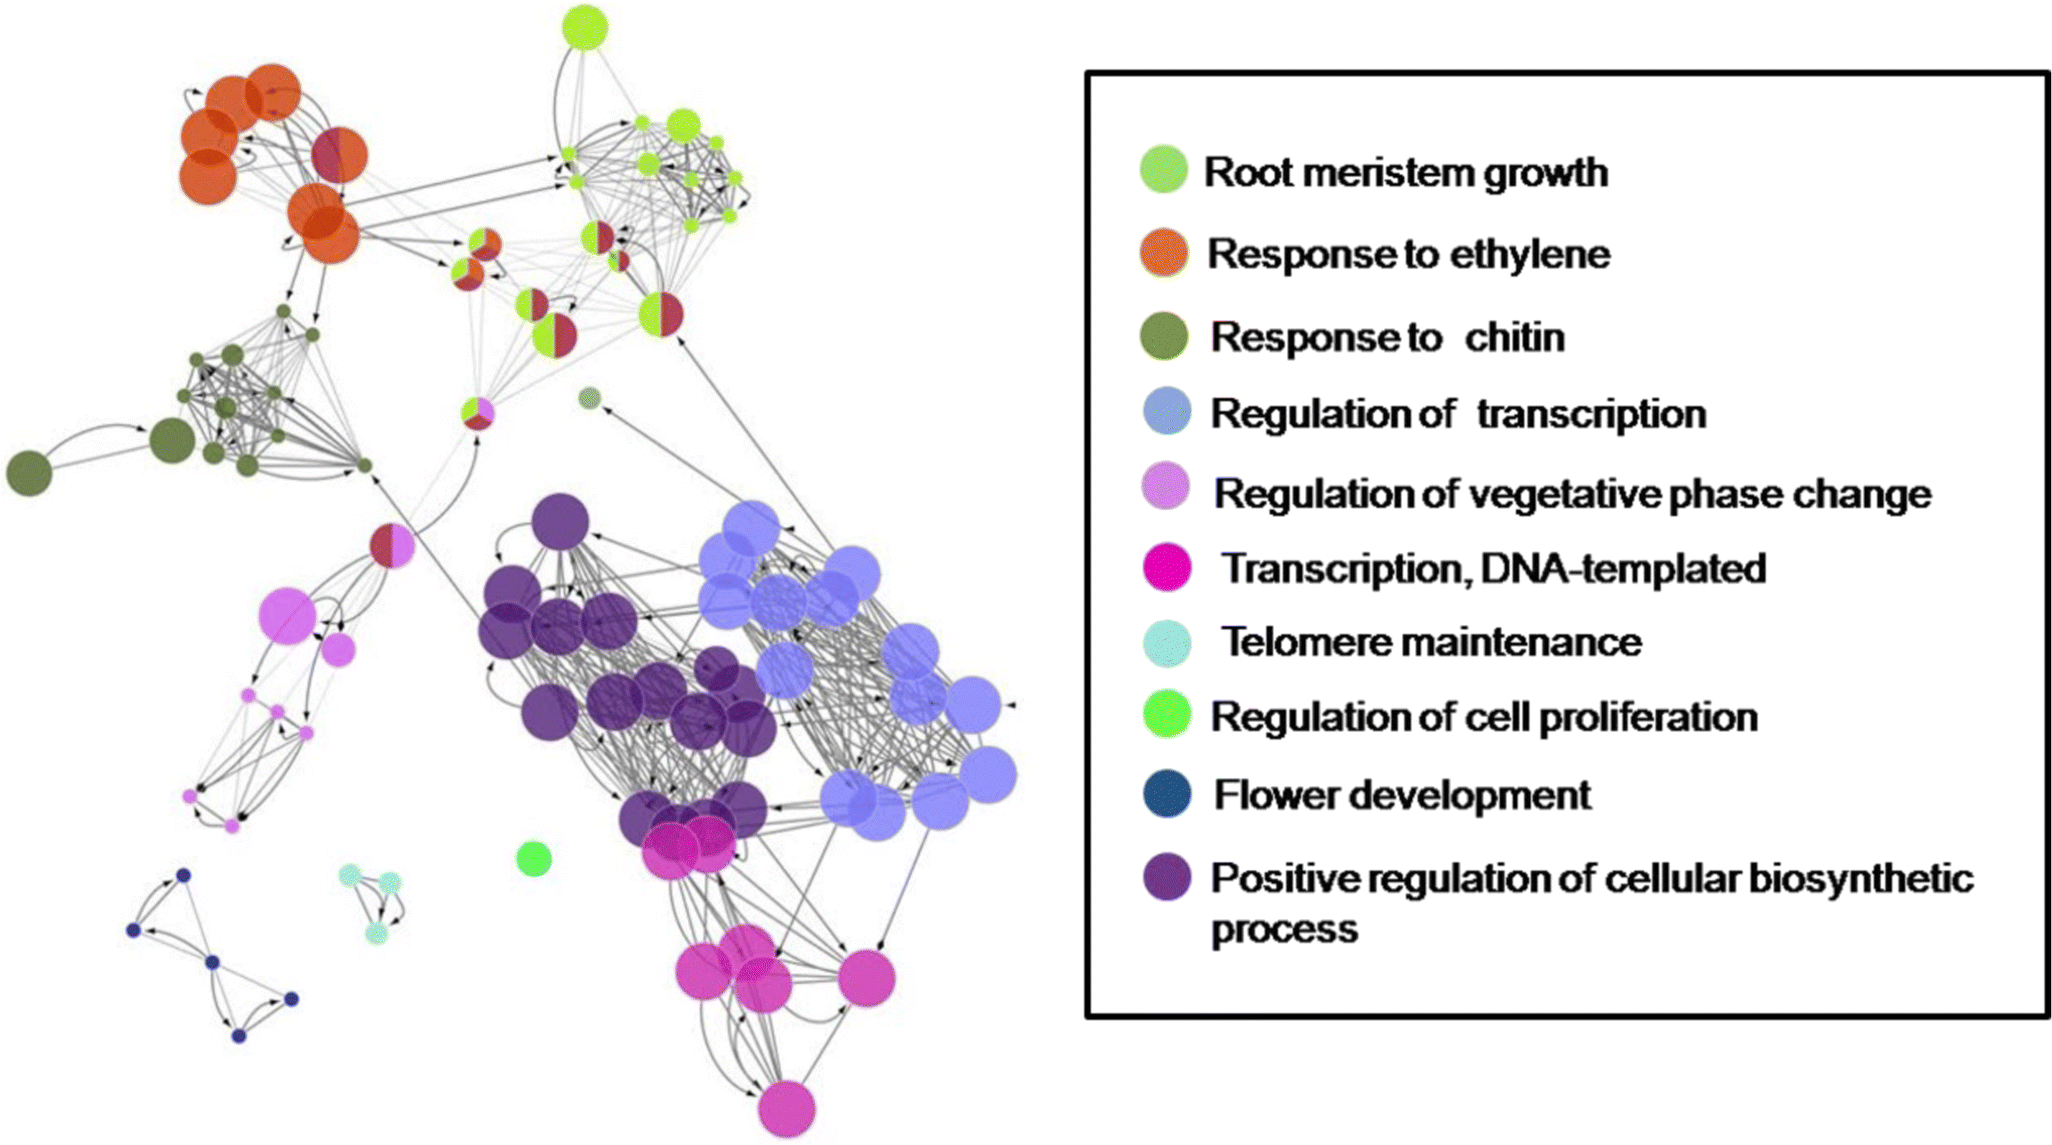 Gene network modules associated with abiotic stress response